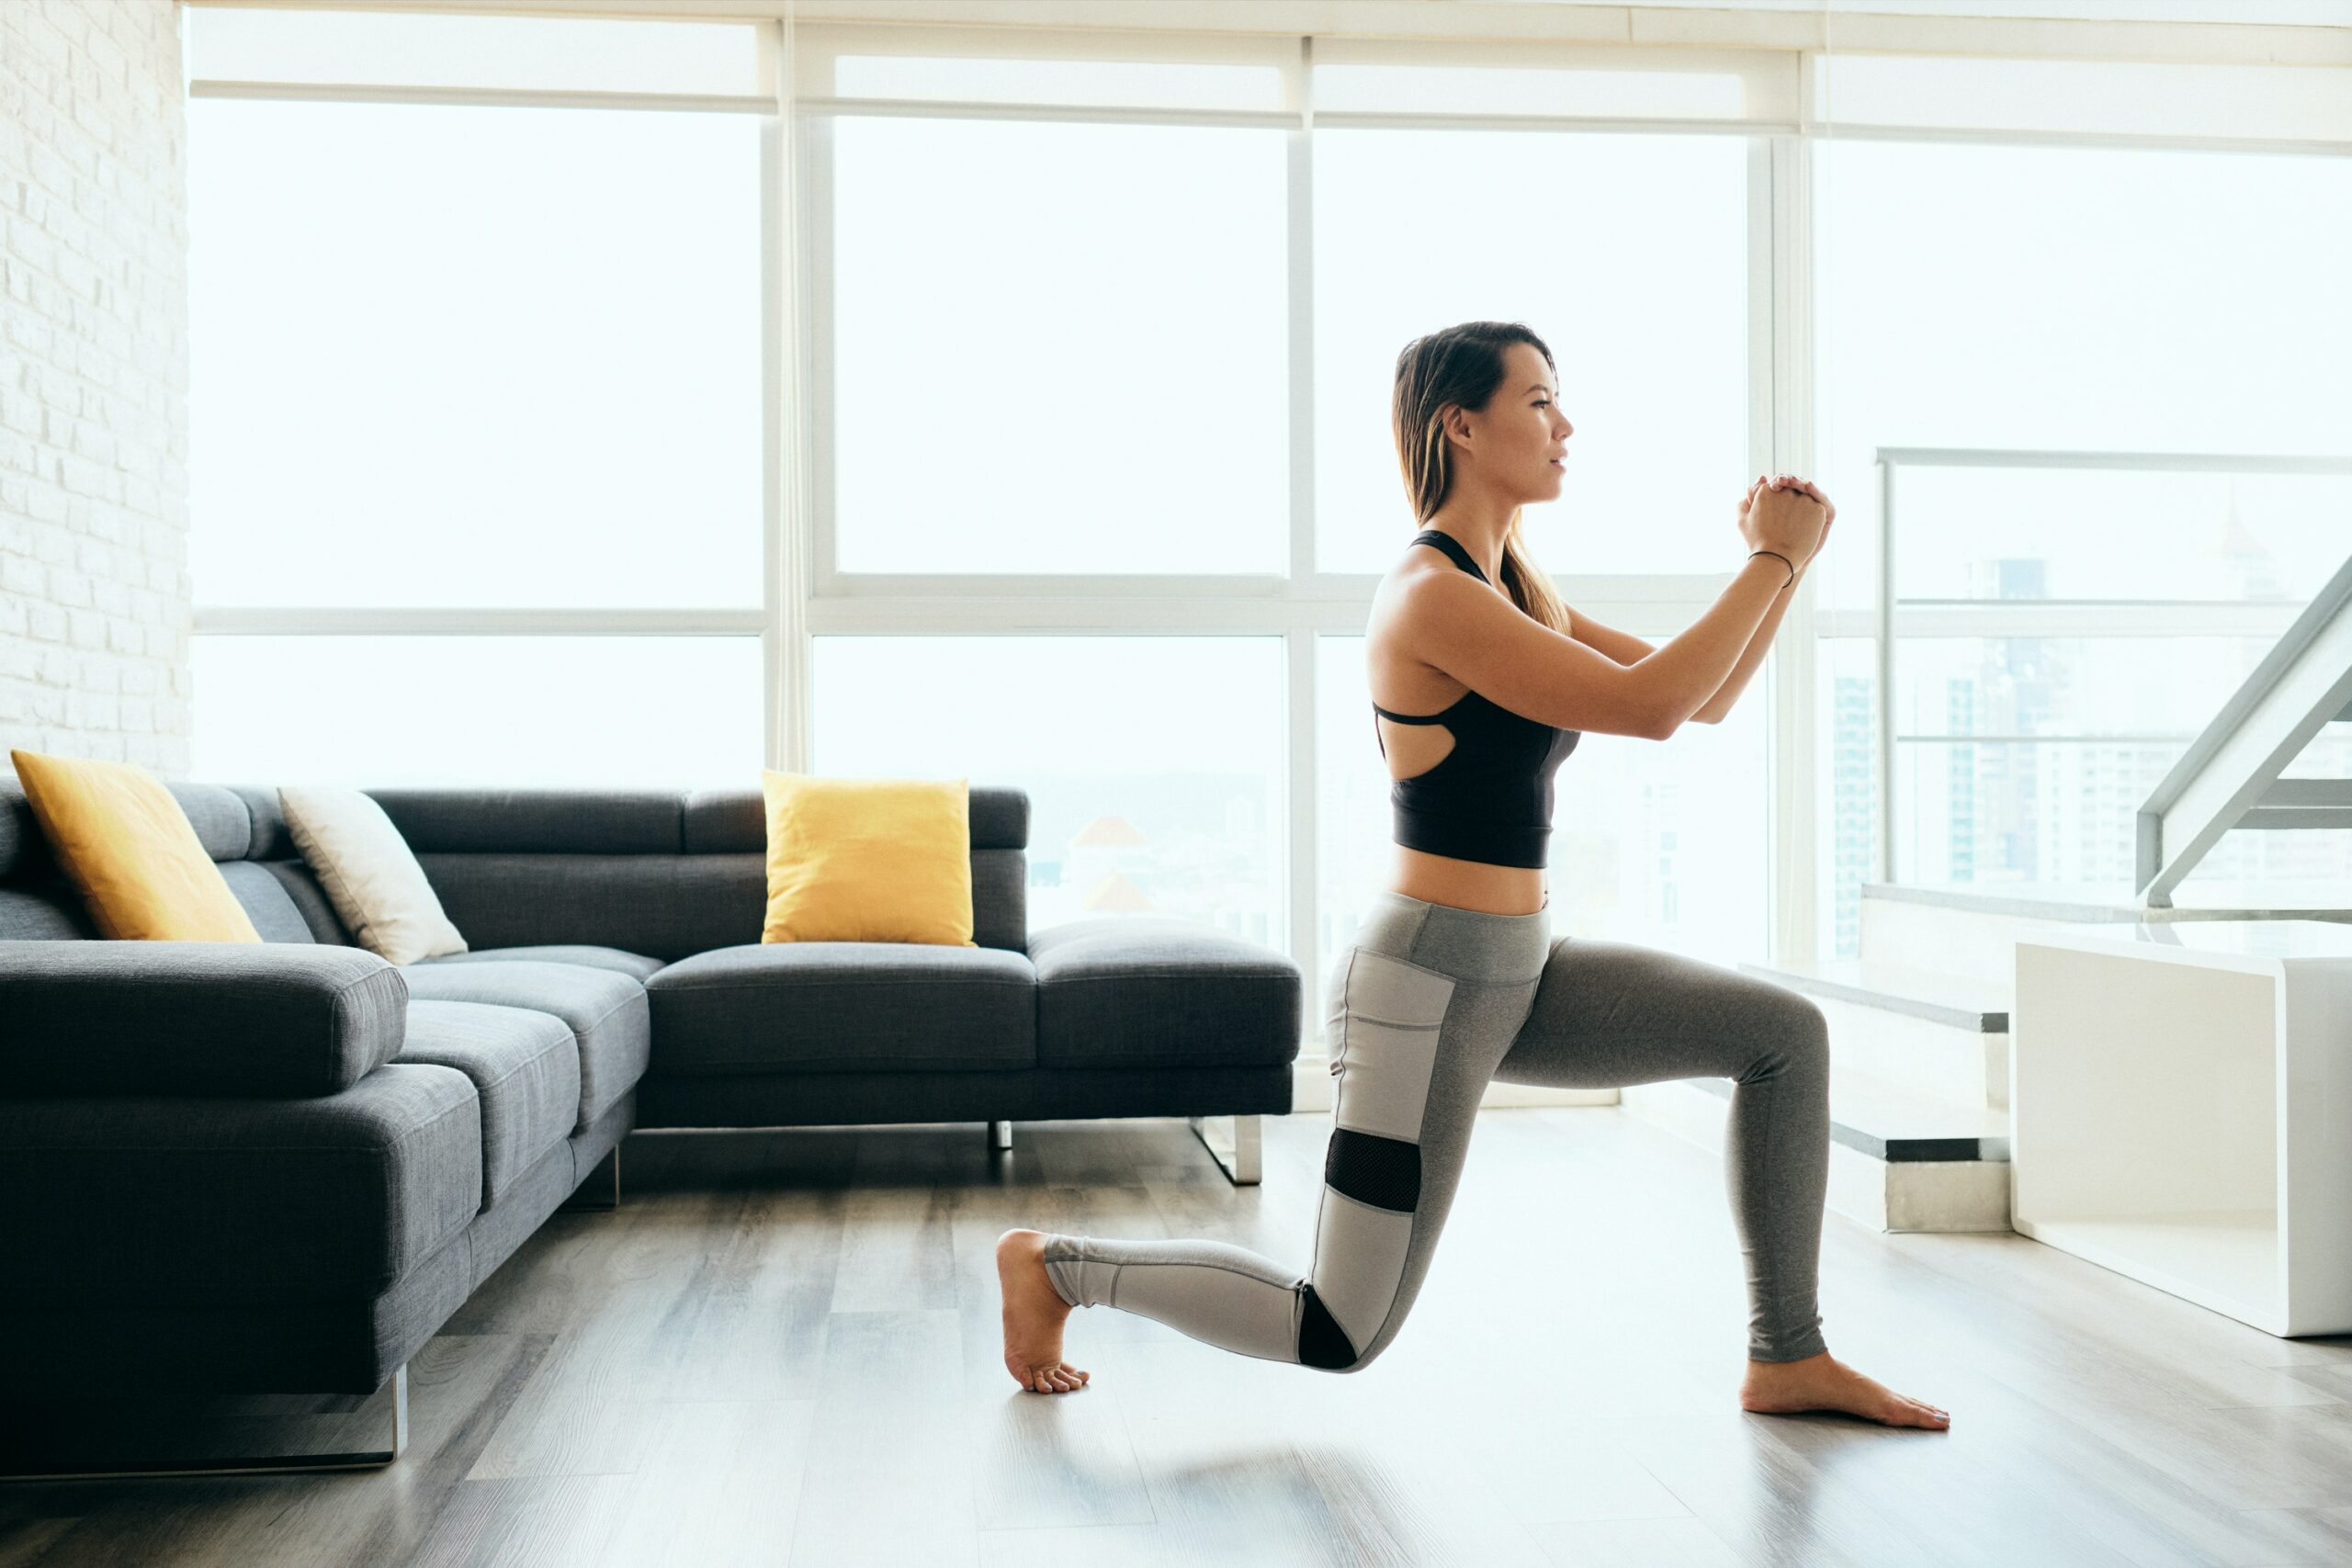 3 Of The Best Exercises For Toning And Strengthening Legs